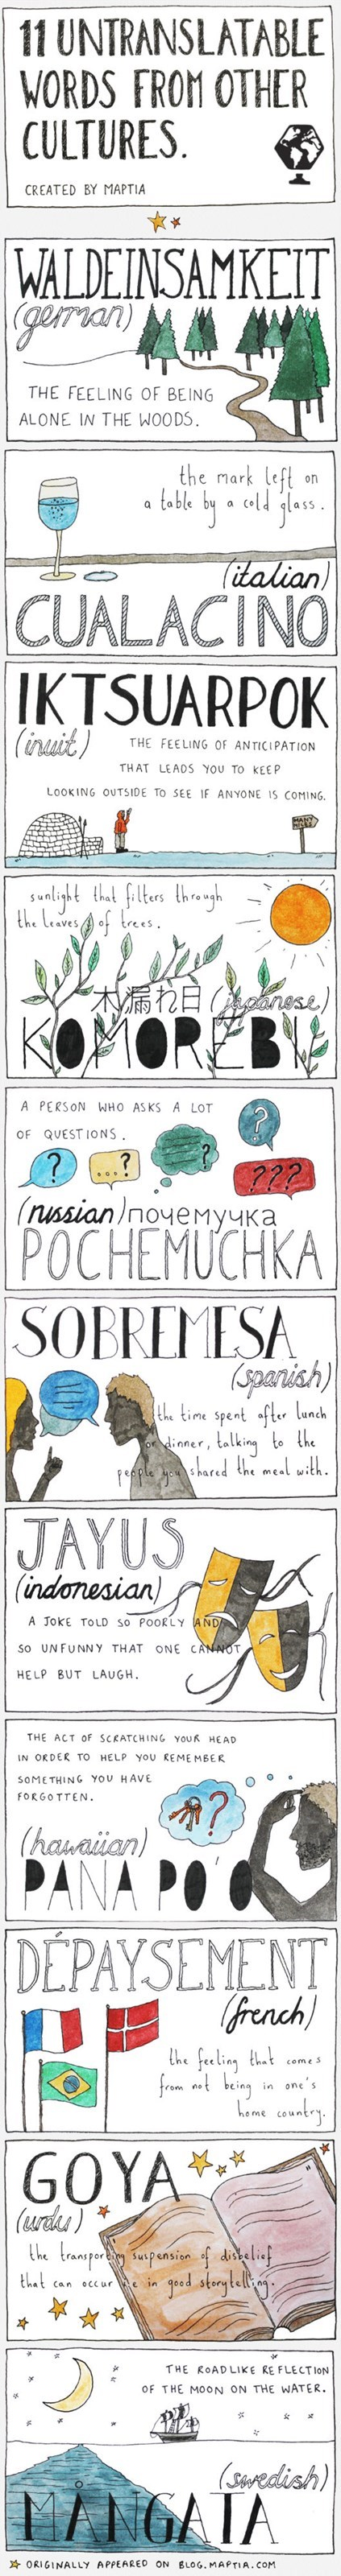 untranslatable words language funny - 7763675136